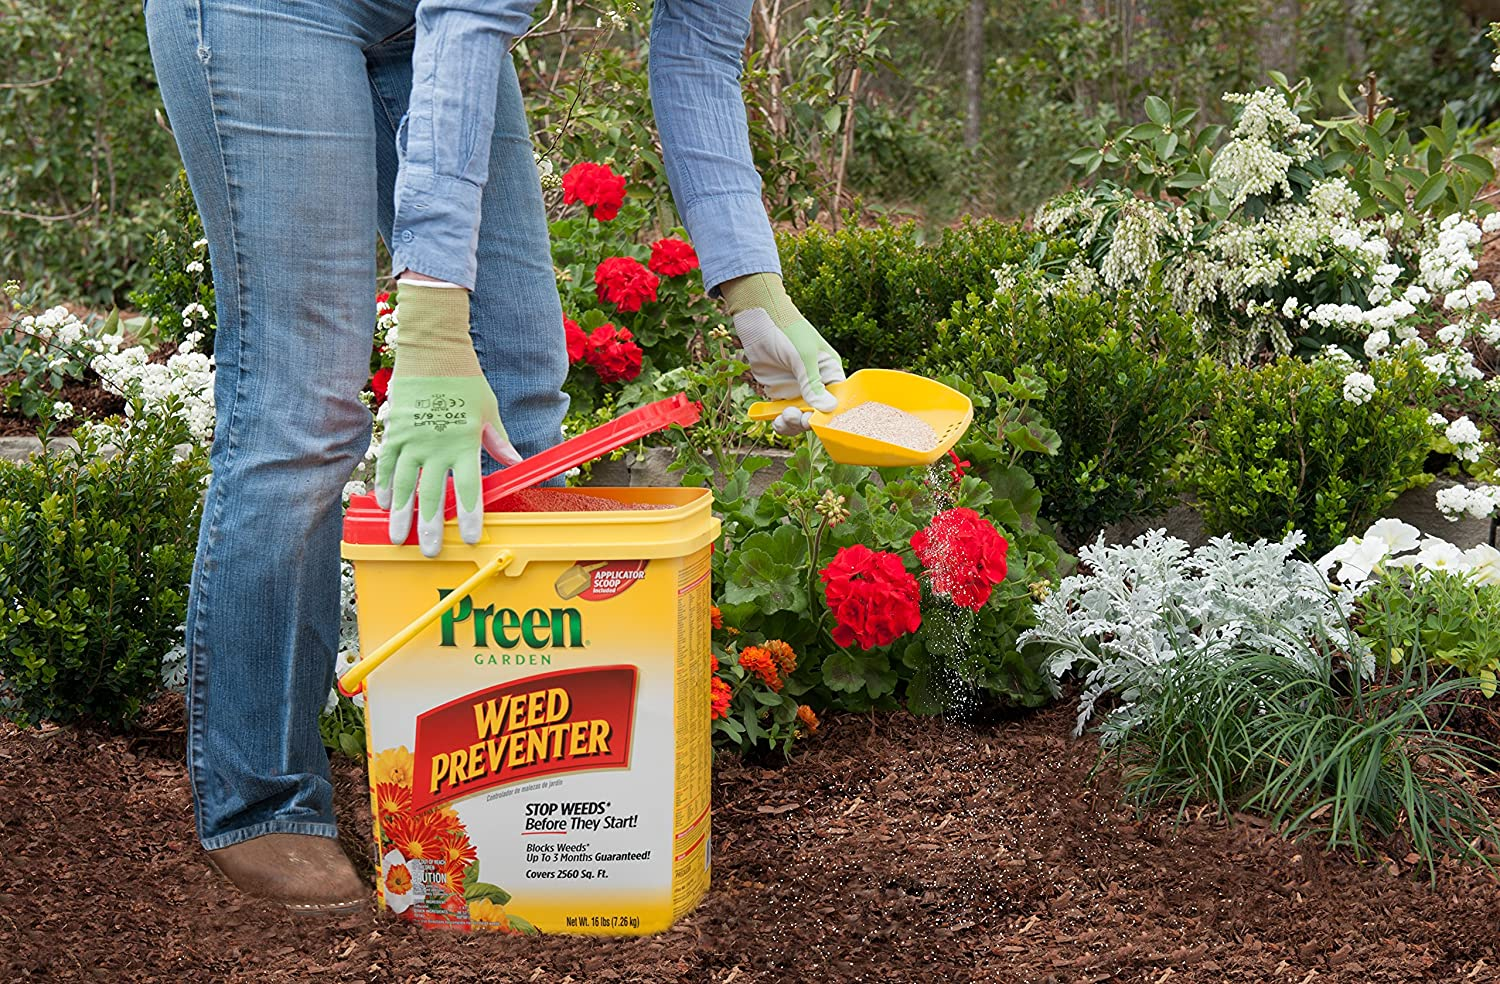 Stop weeds in flower beds - Amazon Com Preen Garden Weed Preventer 16 Lb Pail Covers 2560 Sq Ft Preen Southern Weed Preventer Garden Outdoor